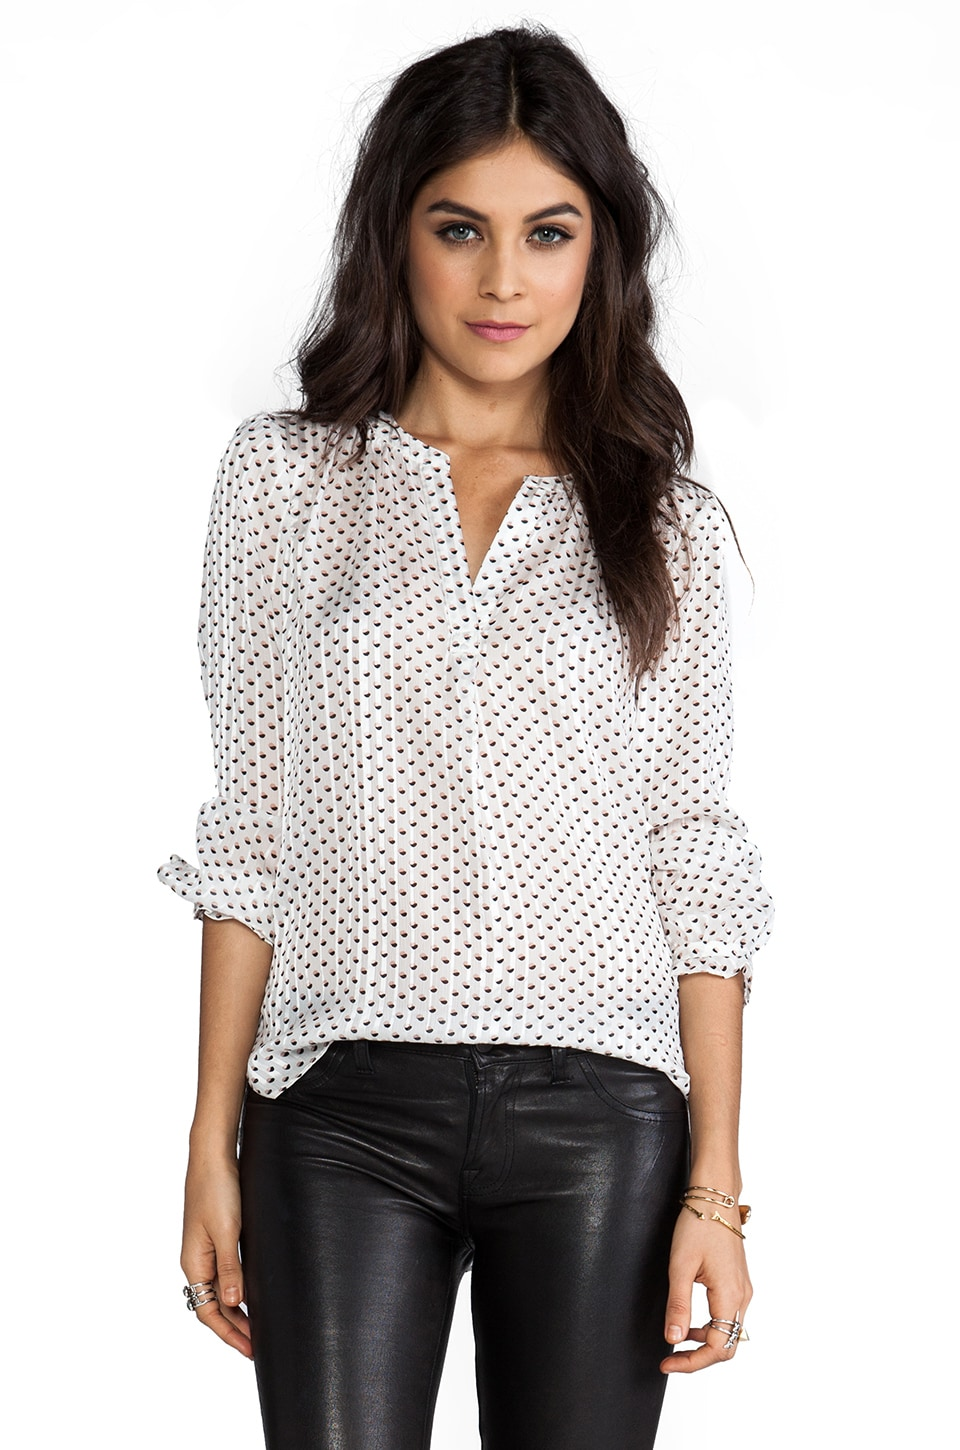 Marc by Marc Jacobs Minette Print Blouse in Antique White Multi